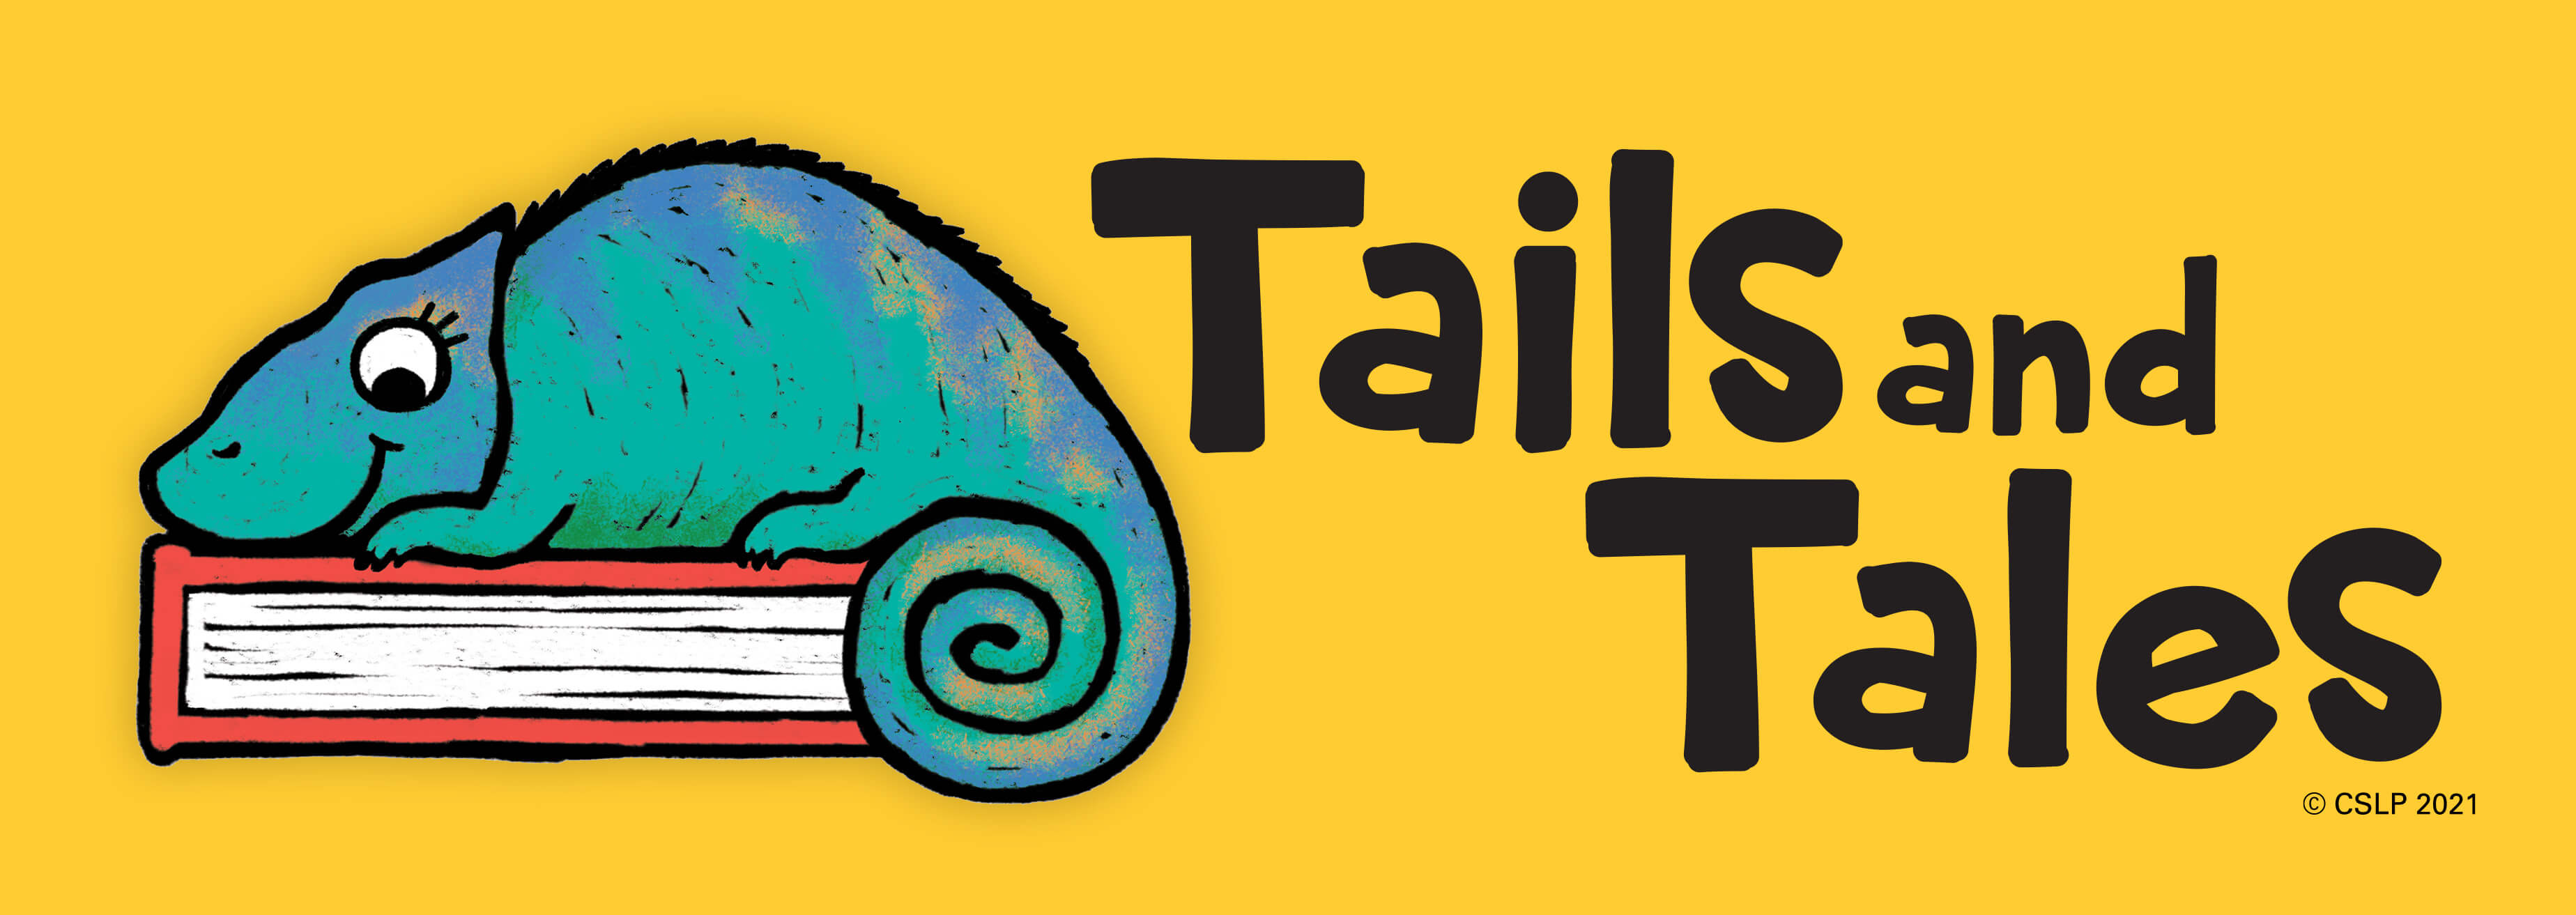 Summer Reading 2021 - Tails and Tales